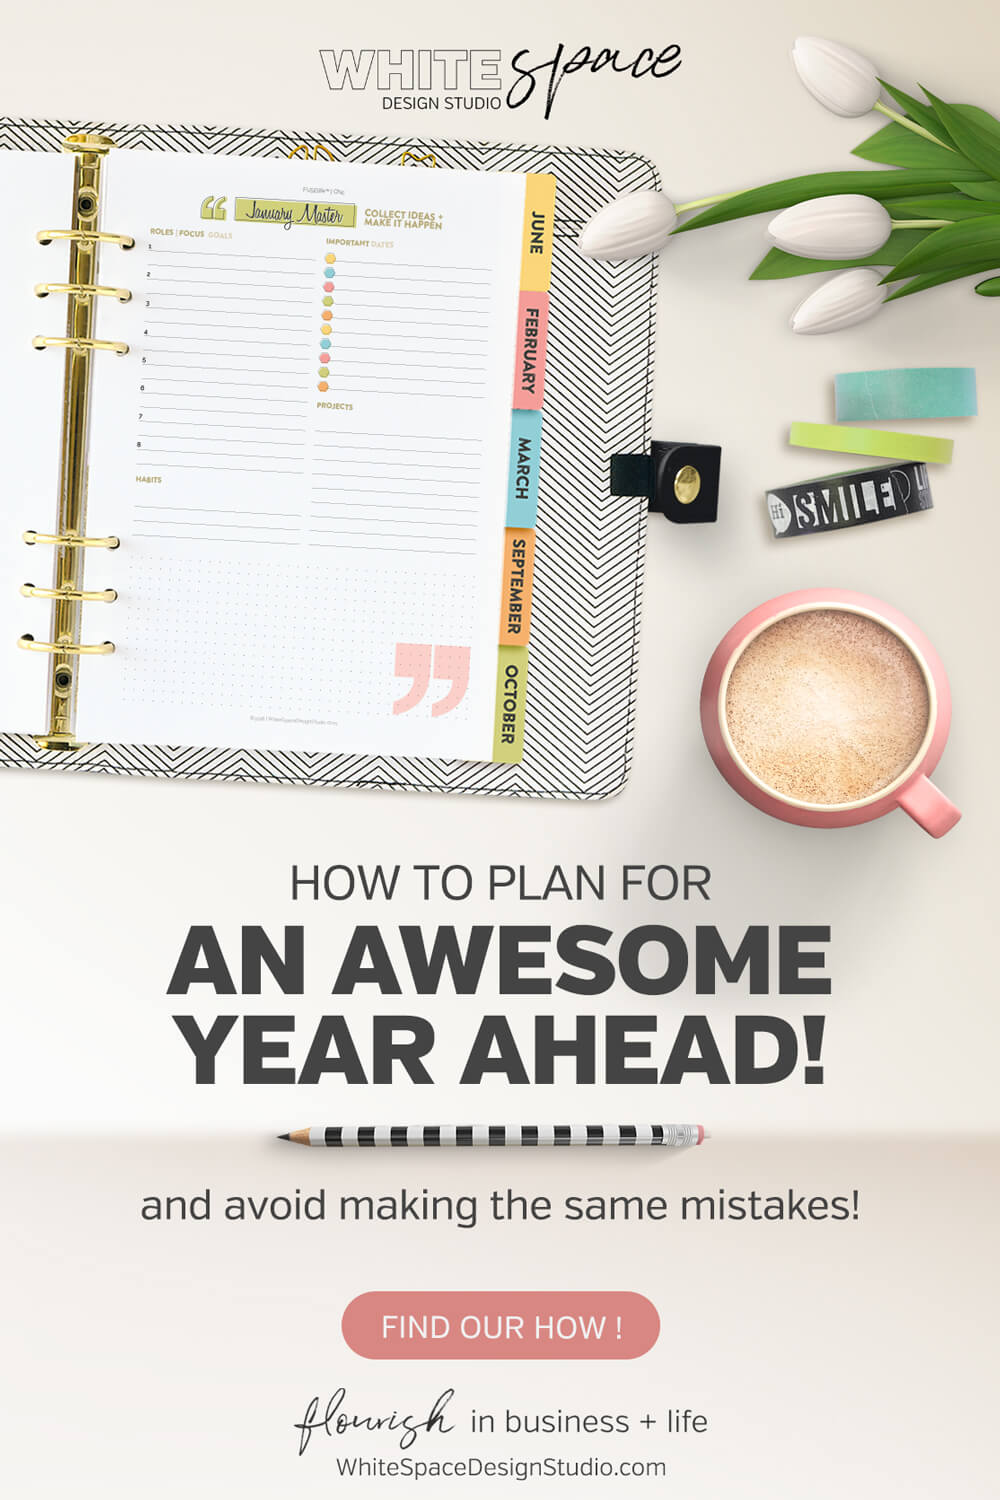 Use this simple 3 step process to avoid the same mistakes and frustrations, and plan for an awesome year ahead! | whitespacedesignstudio.com #flourishwithwhitespace #plannerprintables #planning #productivity #endofyearreview #goalsetting #newyear